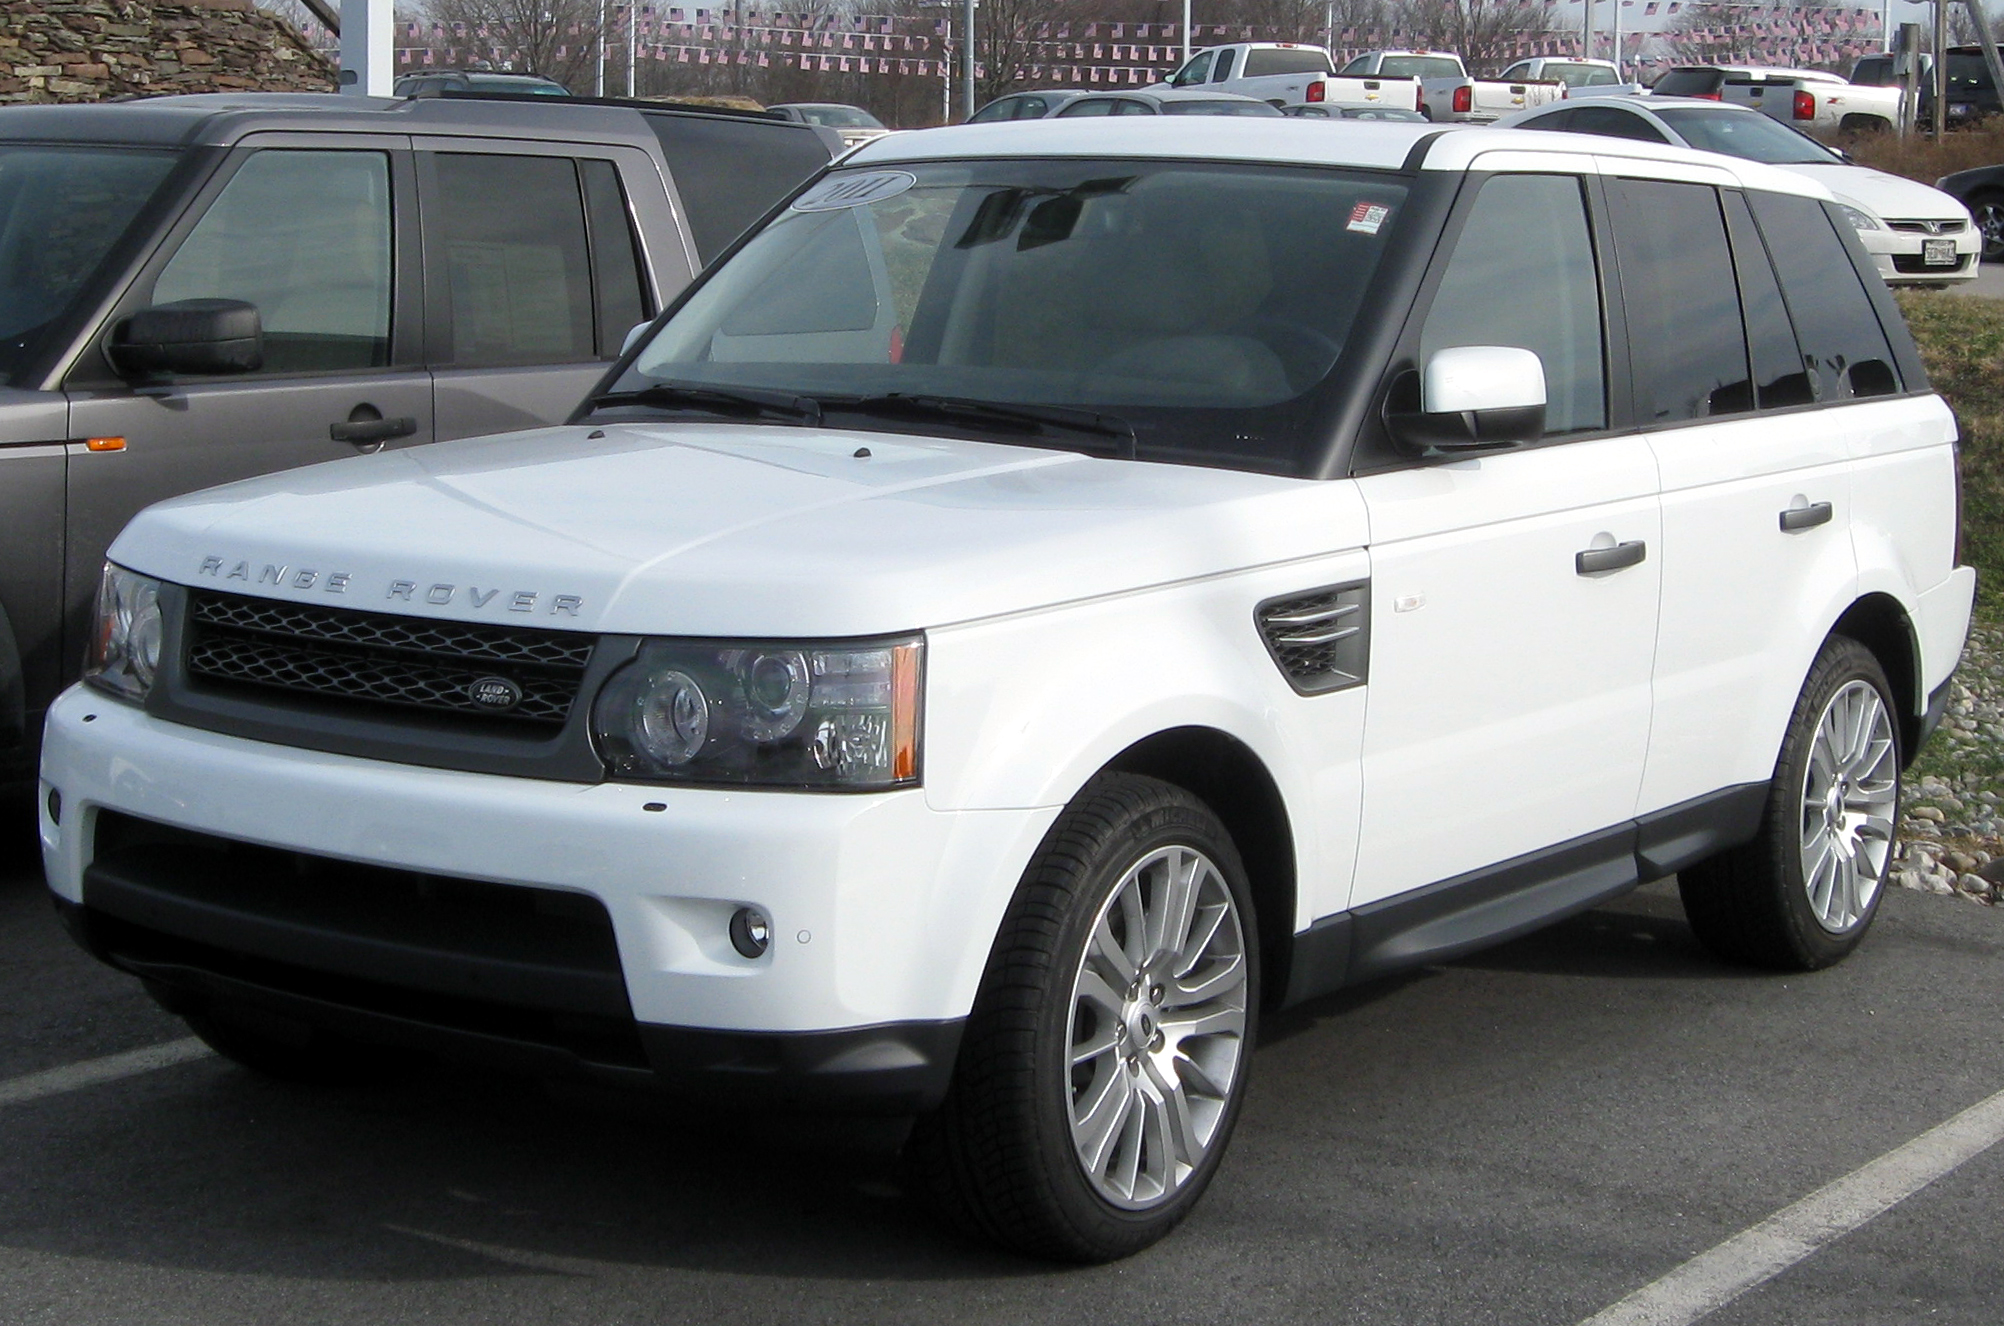 file 2011 range rover sport 12 31 wikimedia commons. Black Bedroom Furniture Sets. Home Design Ideas